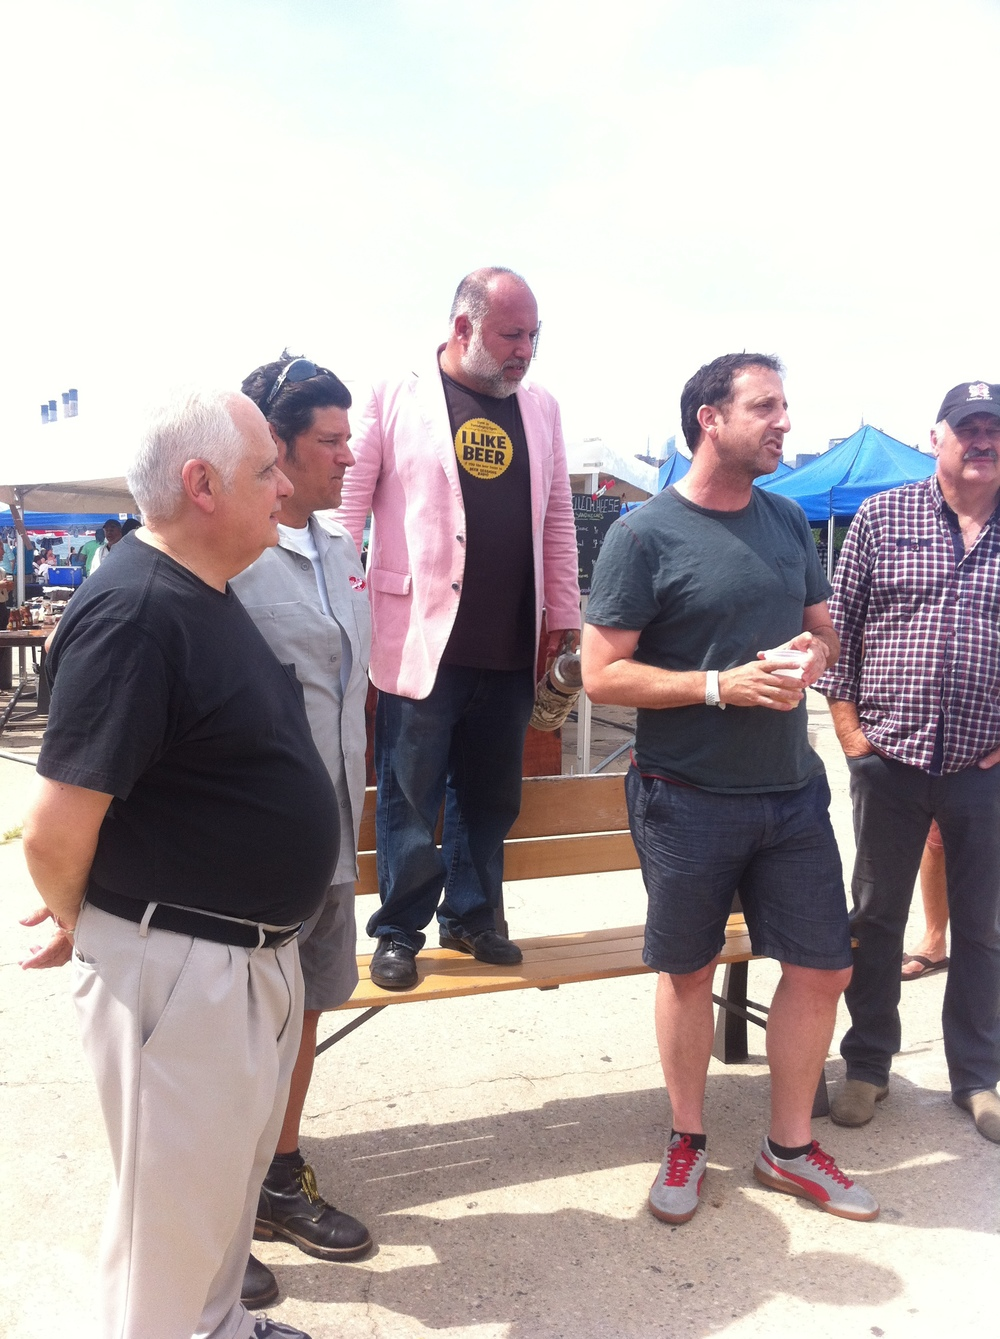 Jimmy Carbone (center, pink blazer) awarding some NY craft beer VIPs. Can you name them?